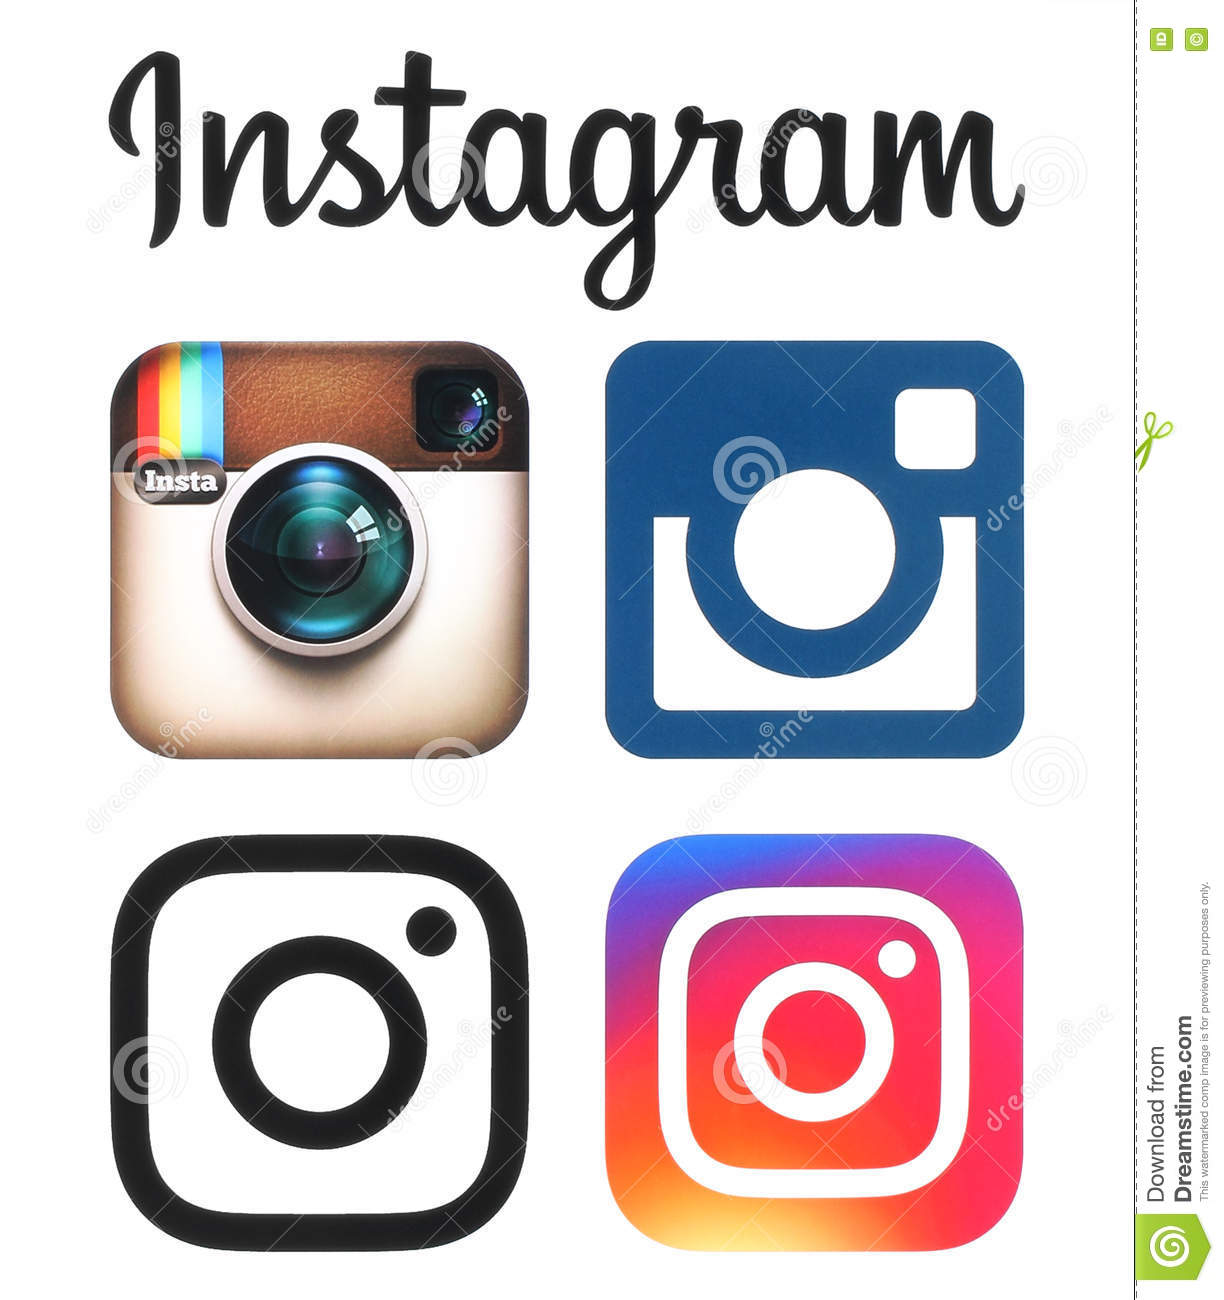 Instagram old and new logos and icons printed on white paper